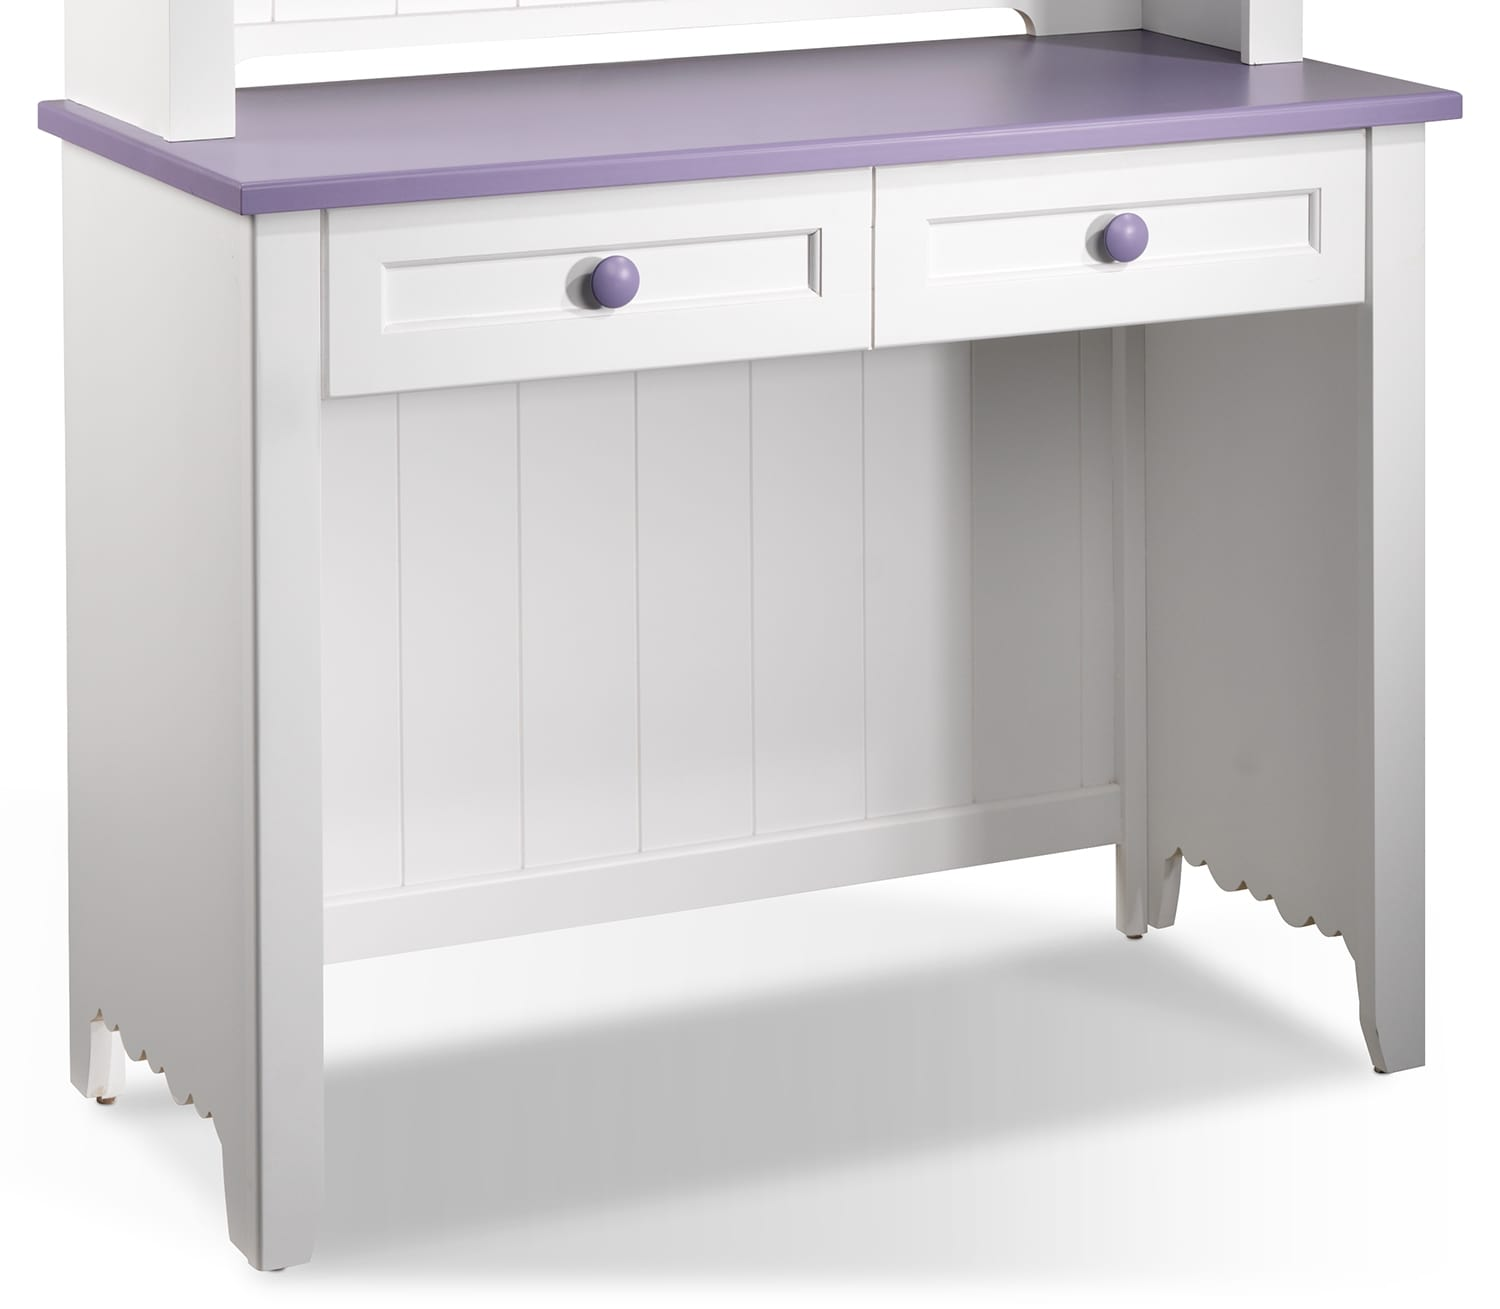 Sweetdreams Desk - White and Lavender